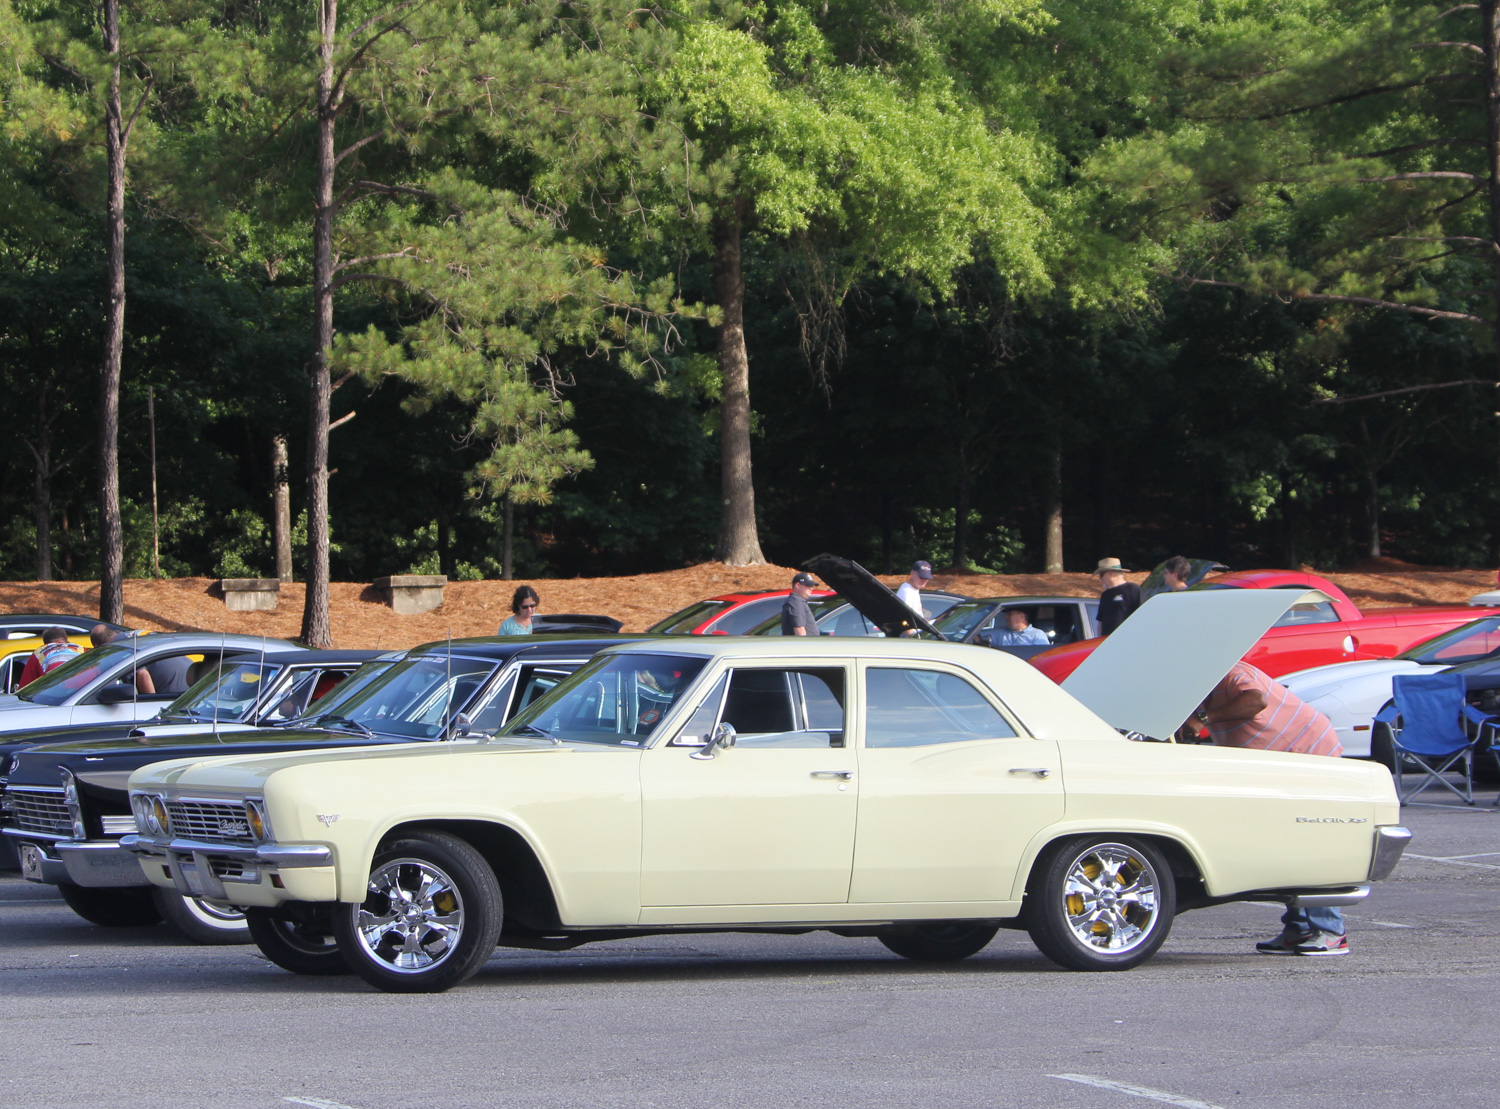 The Bel Air line was distinguished from the Biscayne by a stainless beltline and rocker moldings,  though this particular 1966 four-door sedan is missing them.